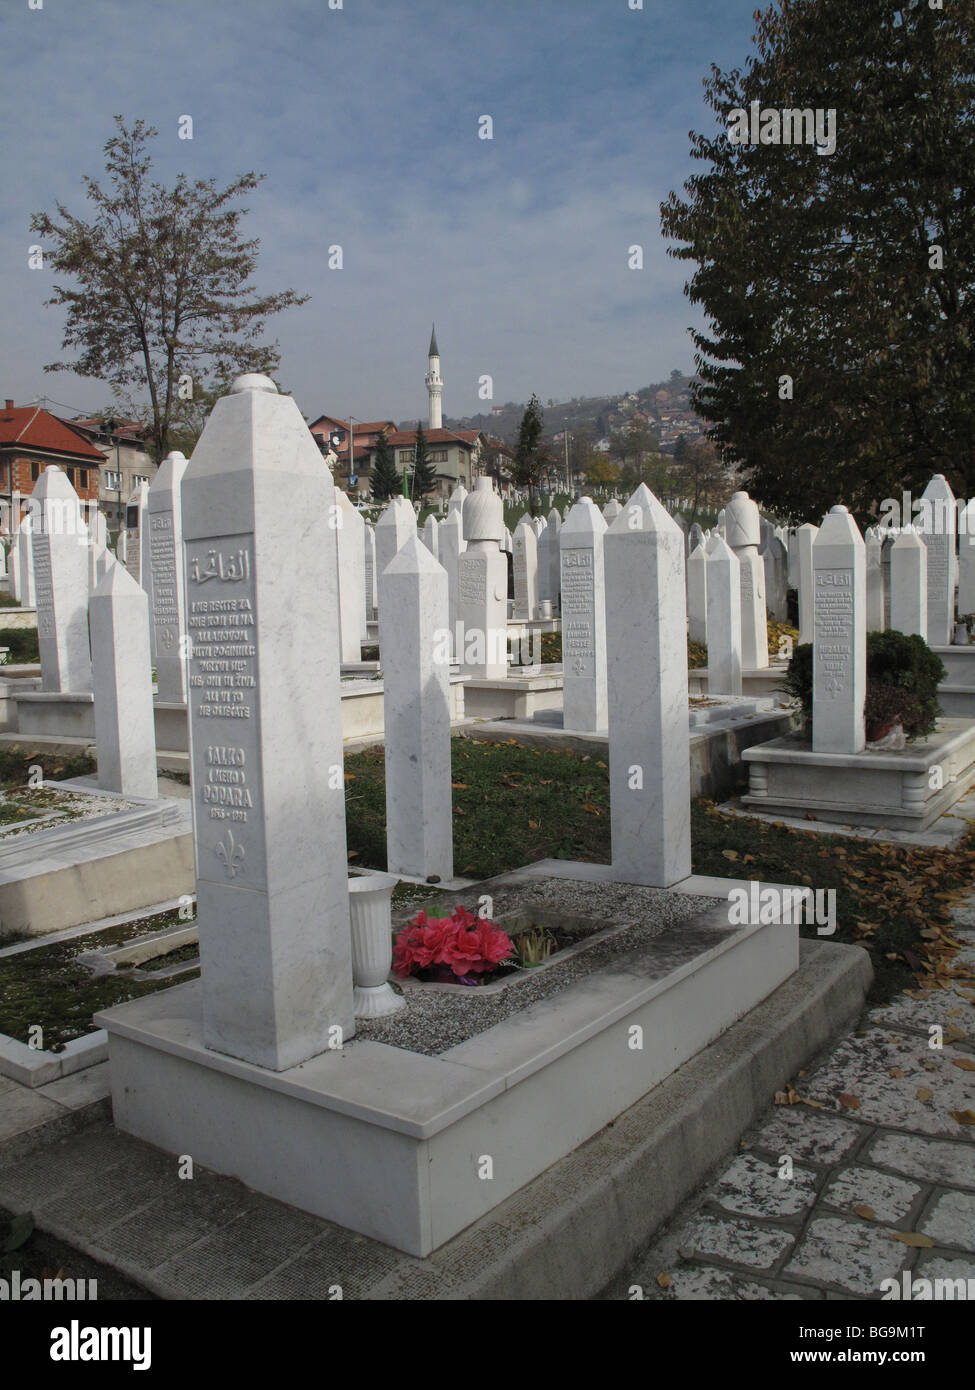 Bosnia Sarajevo . Cemetery with graves of those killed by Serb forces during the 1992-95 war - Stock Image